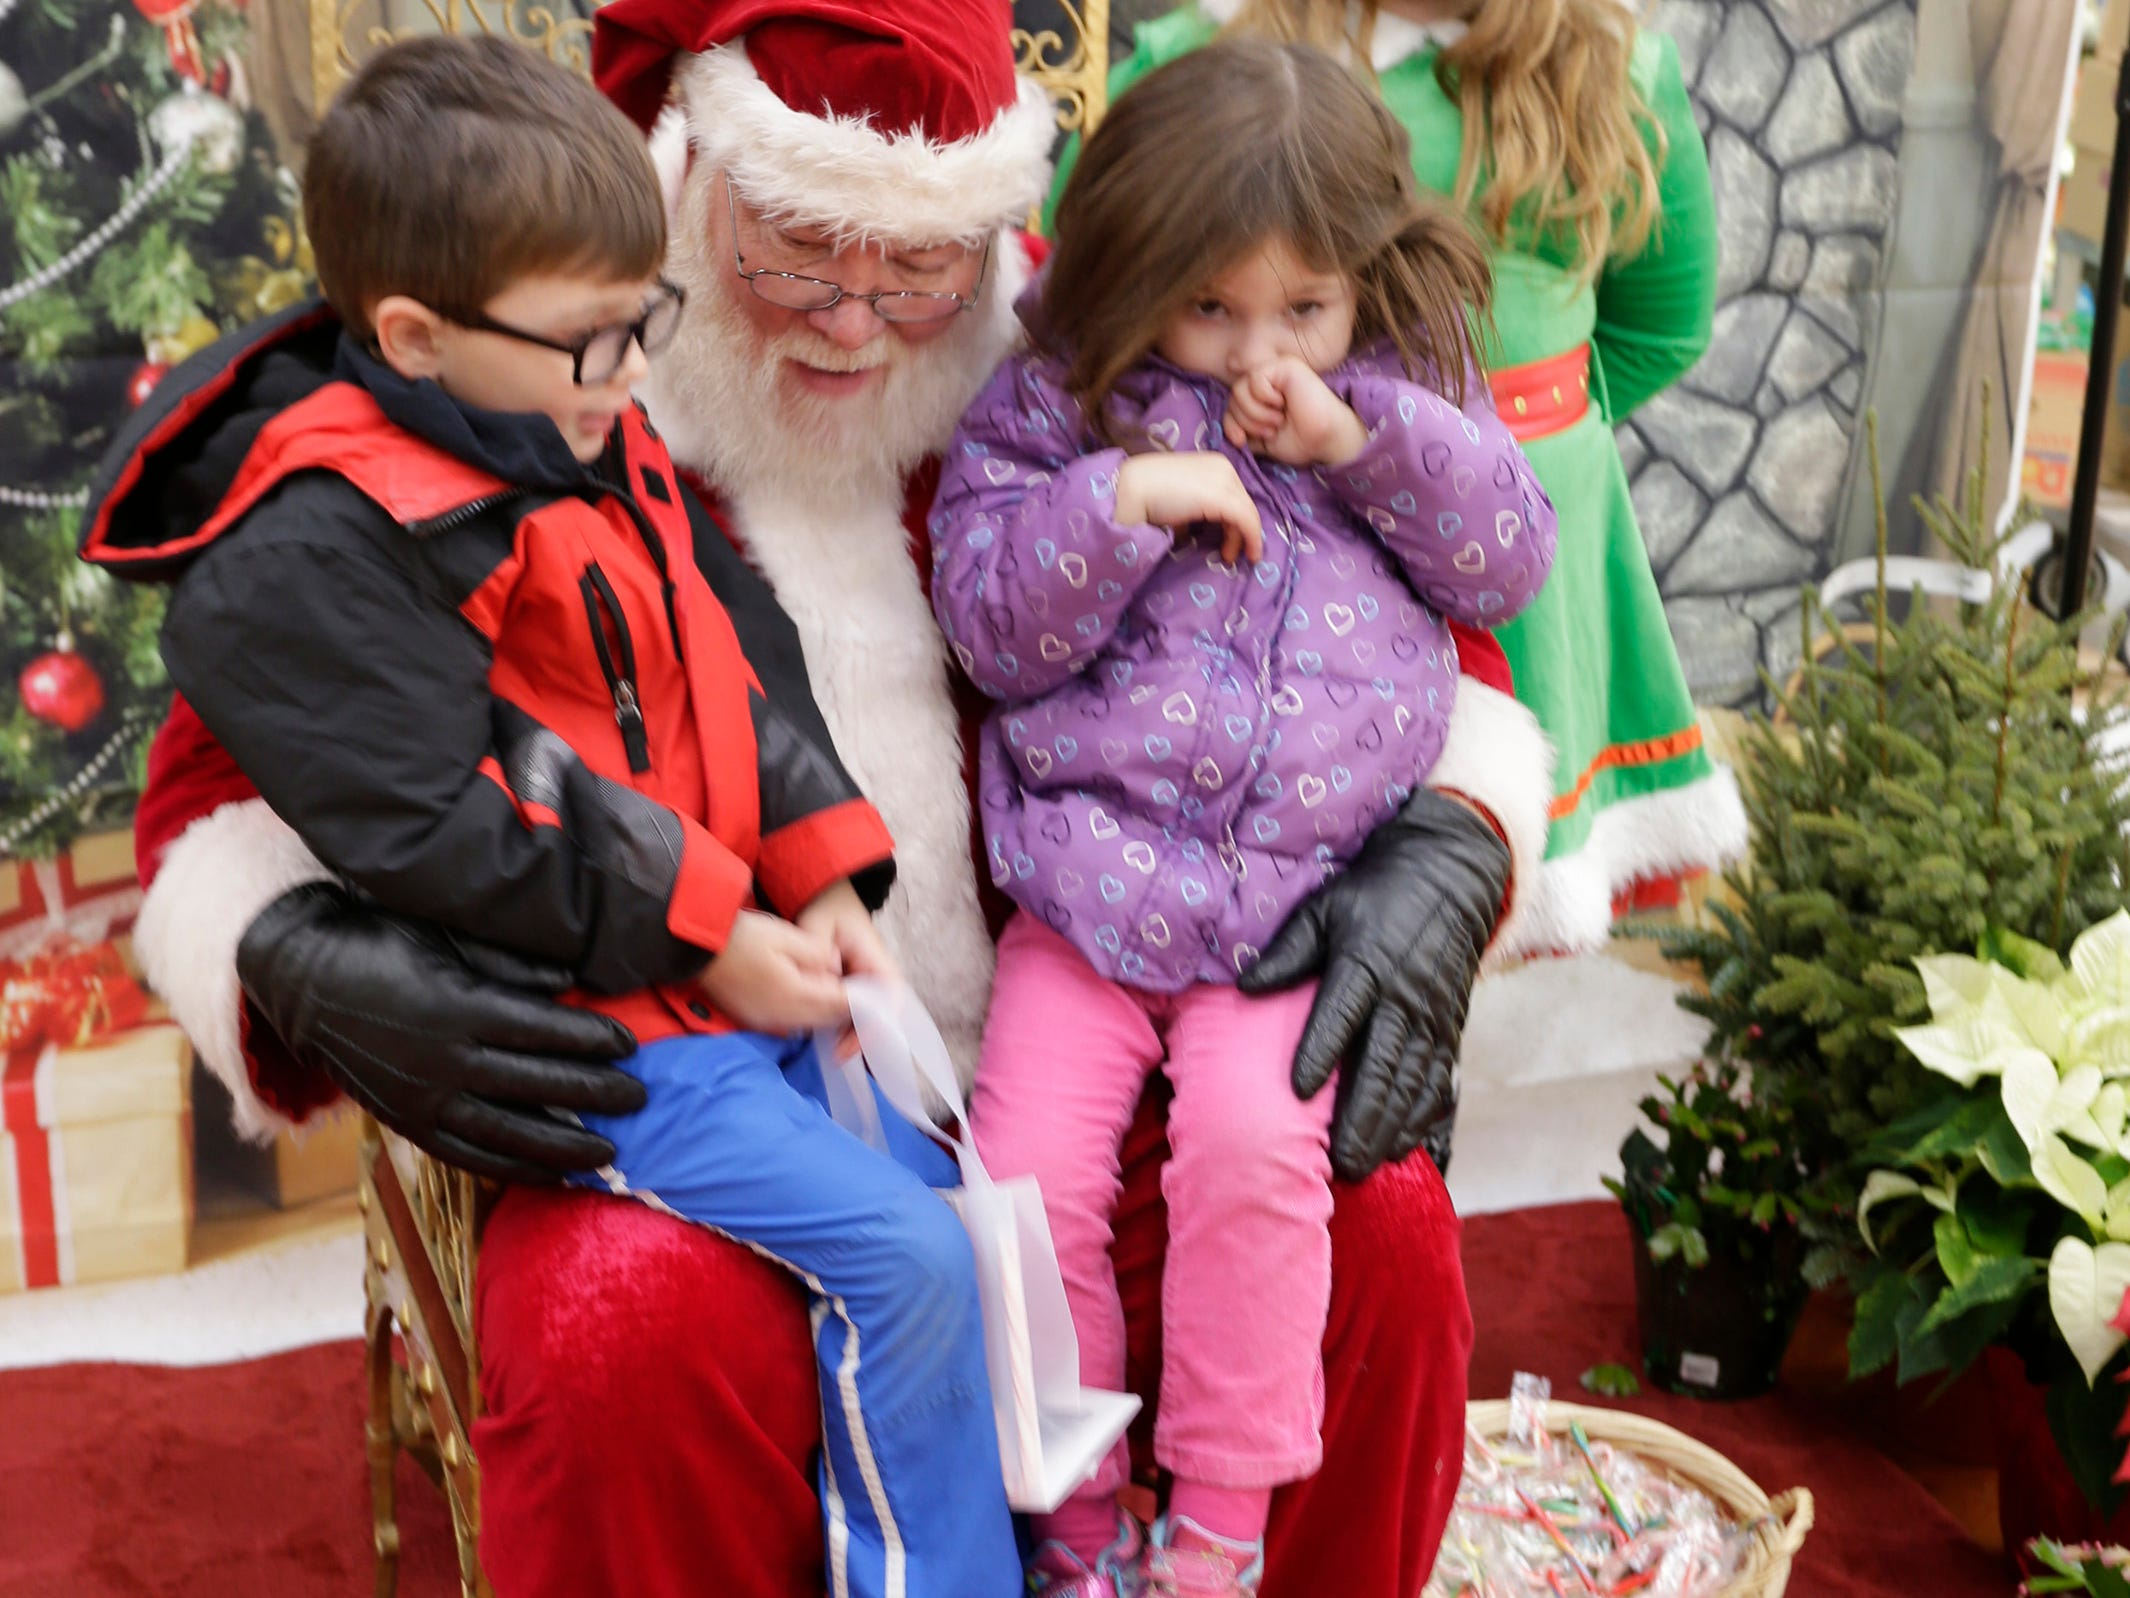 Nolan Zorn, 4, left, and his sister Everly, 3, take turns telling Santa Claus, center, what they want for Christmas during the Salvation Army Kettle Campaign kickoff at Festival Foods, Saturday November 17, 2018, in Sheboygan, Wis.